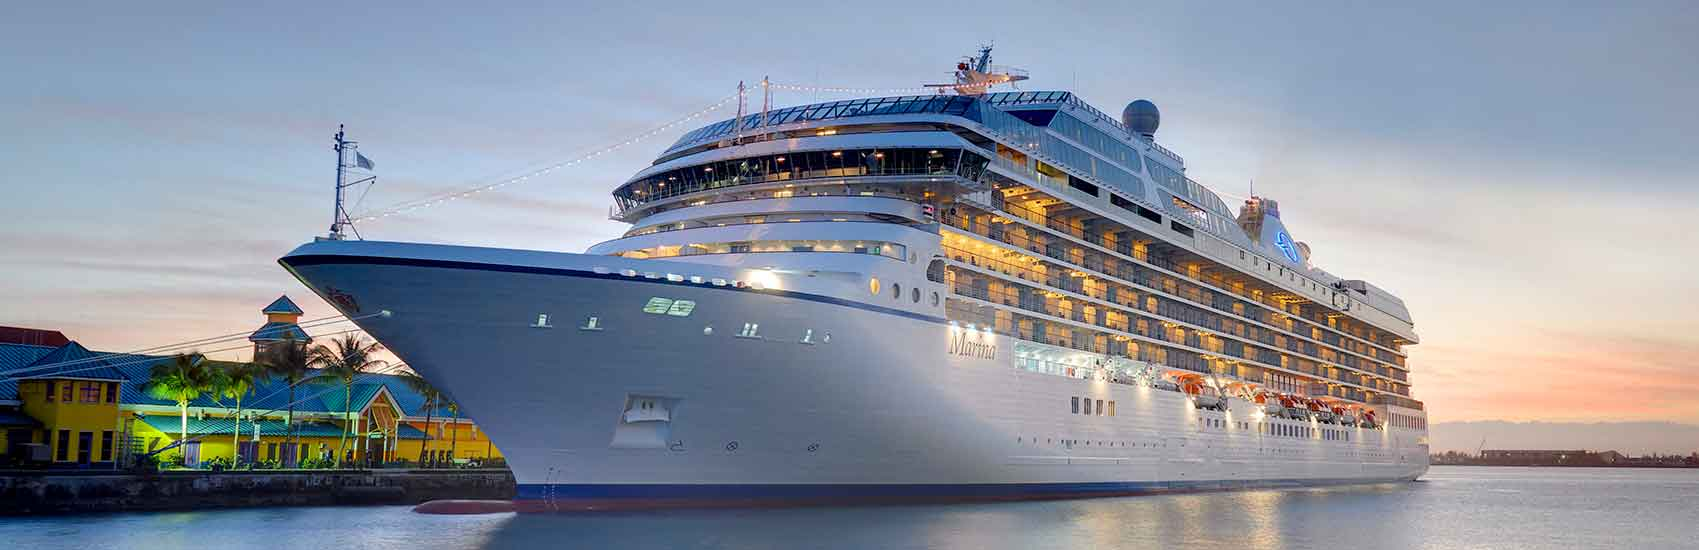 Save with Oceania Cruises